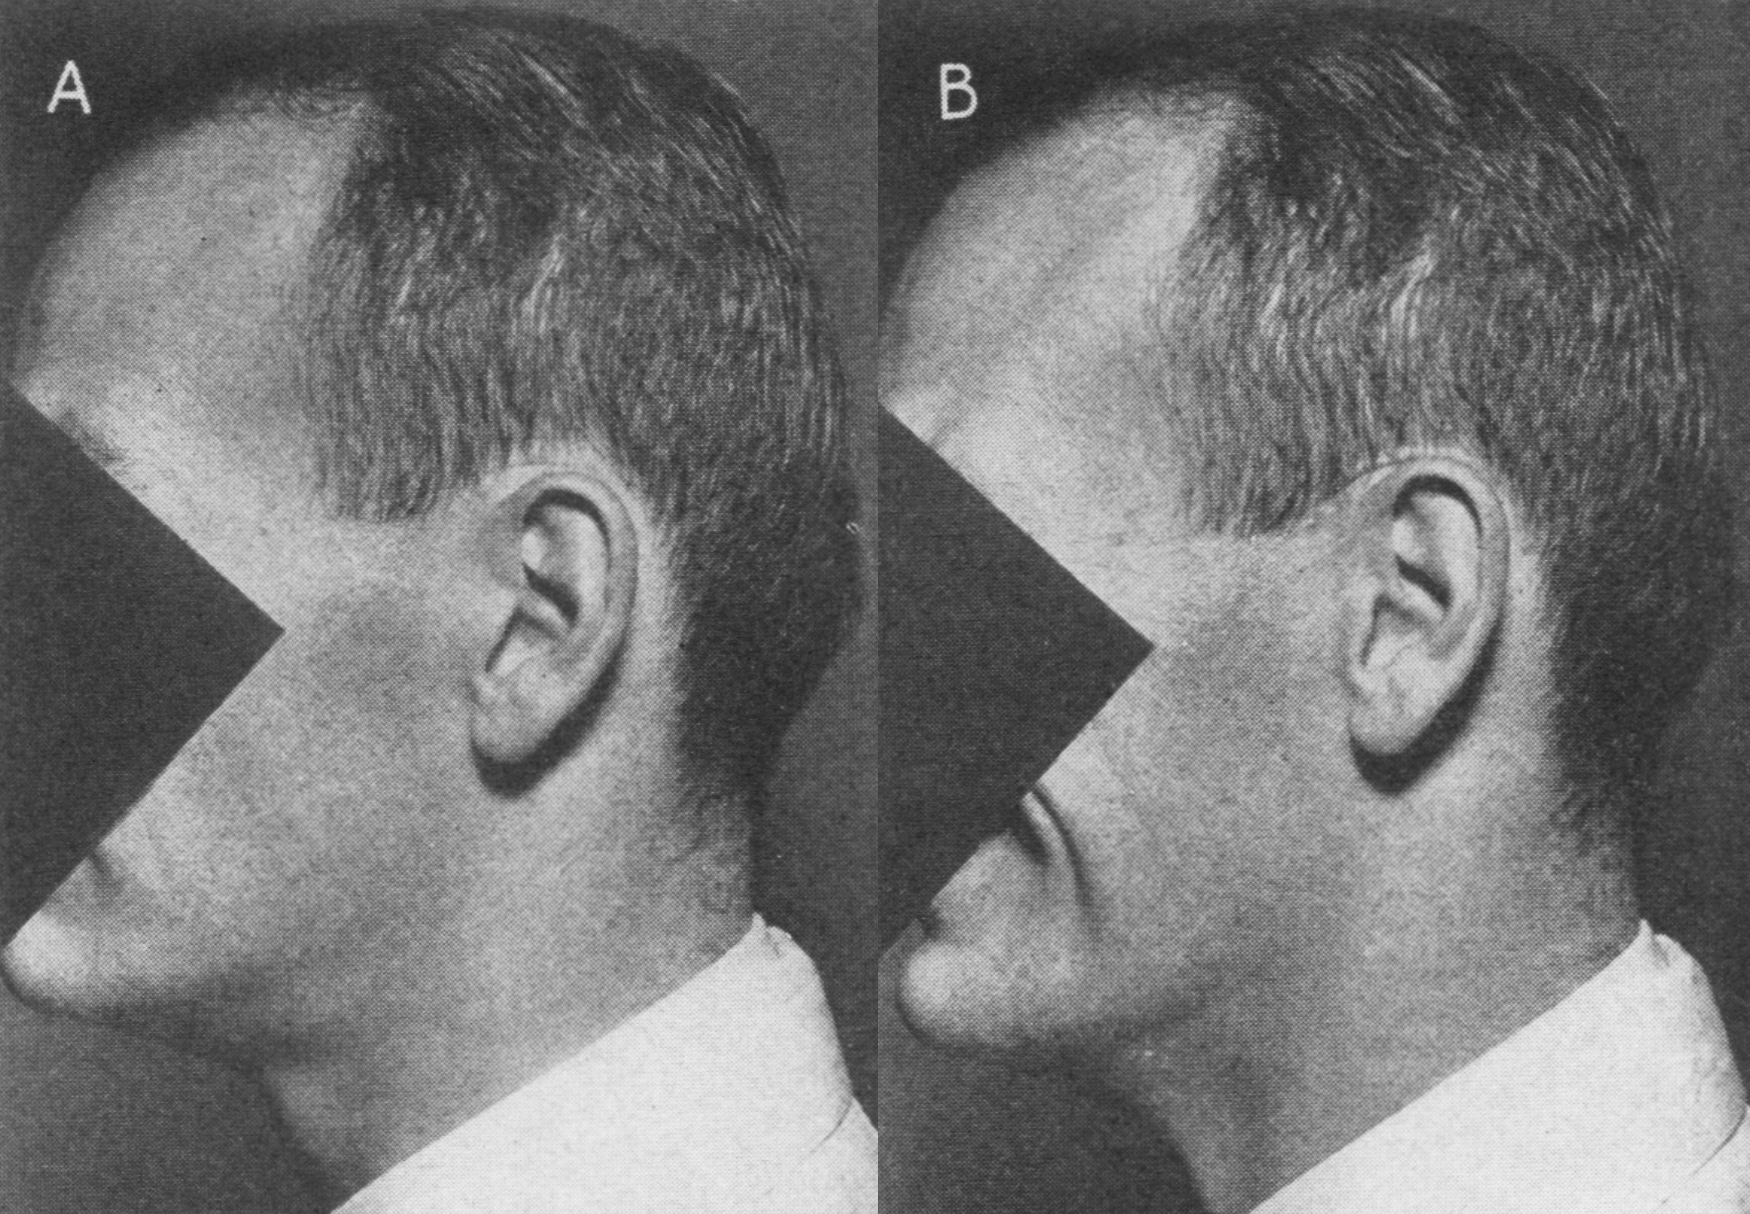 Image : The Theory of The Pathogenesis of Ordinary Human Baldness (1950)